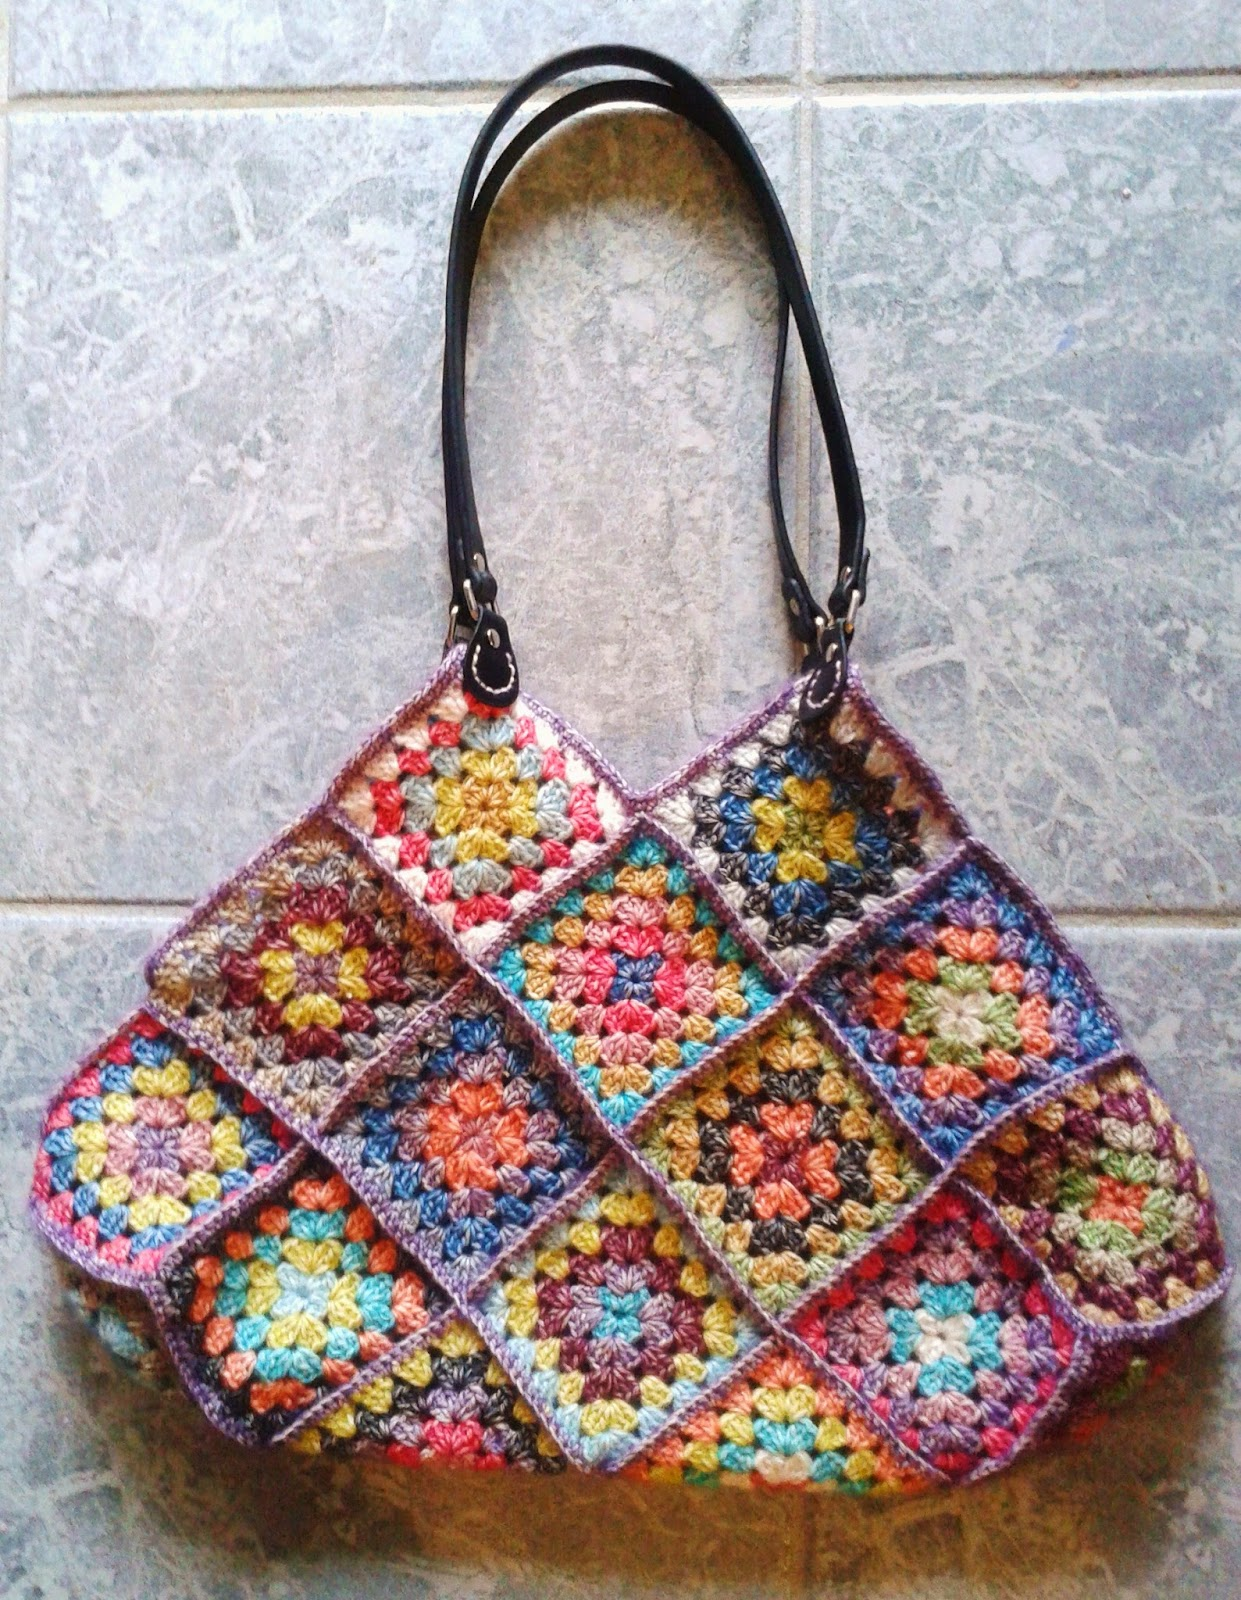 New Crochet Bags : new bag and it is finished a colourful granny square crochet bag